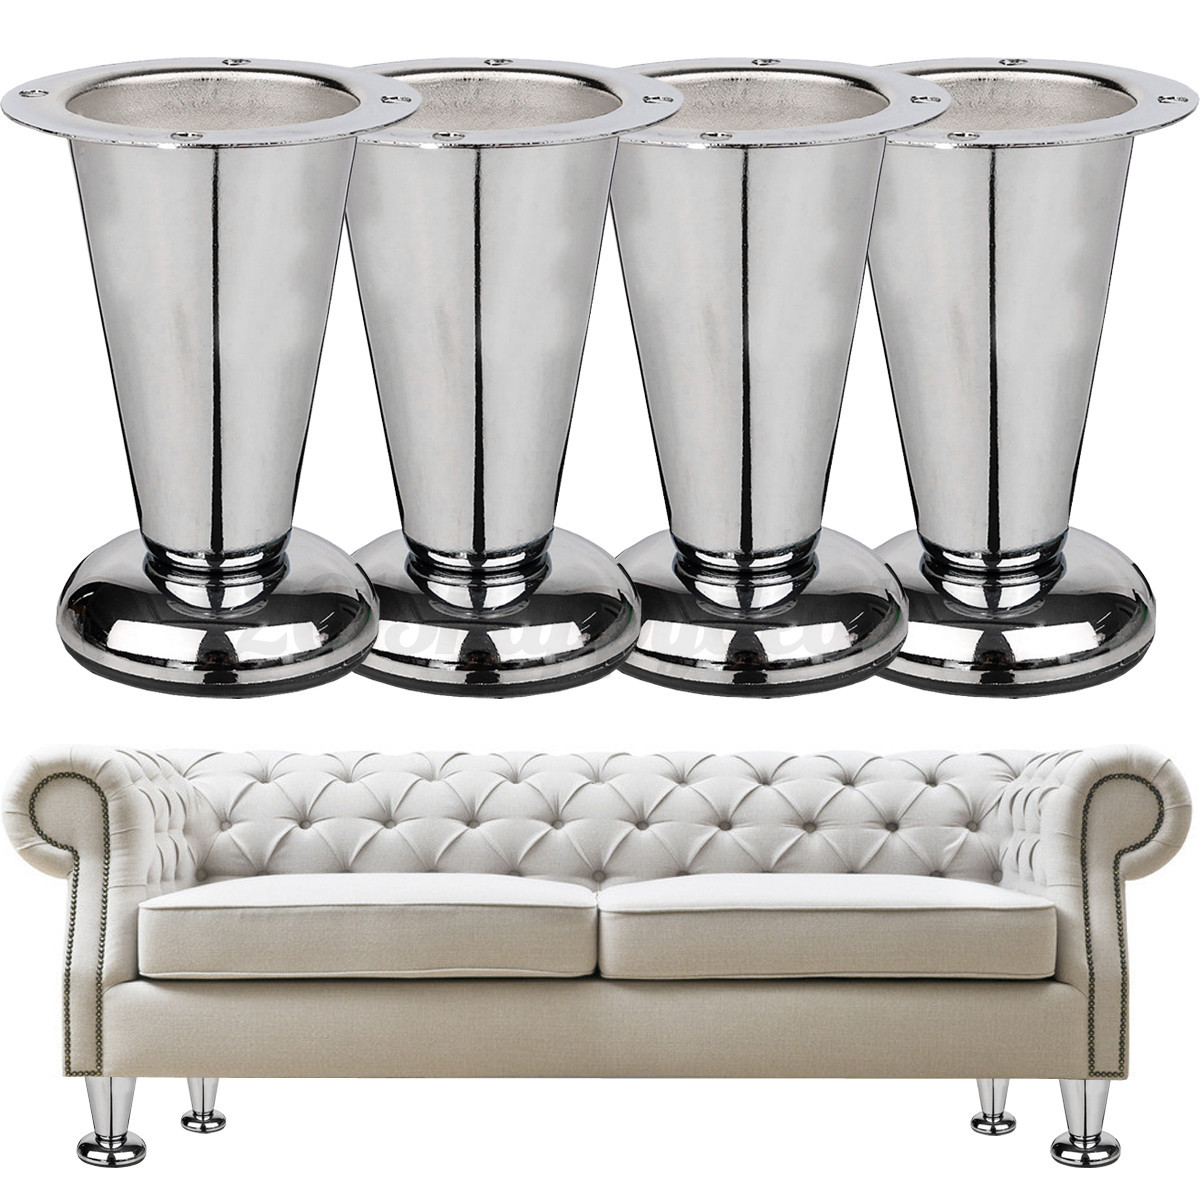 1 4x 4 39 39 Chrome Taper Furniture Sofa Plinth Leg Modern Wardrobe Replacement Feet Ebay